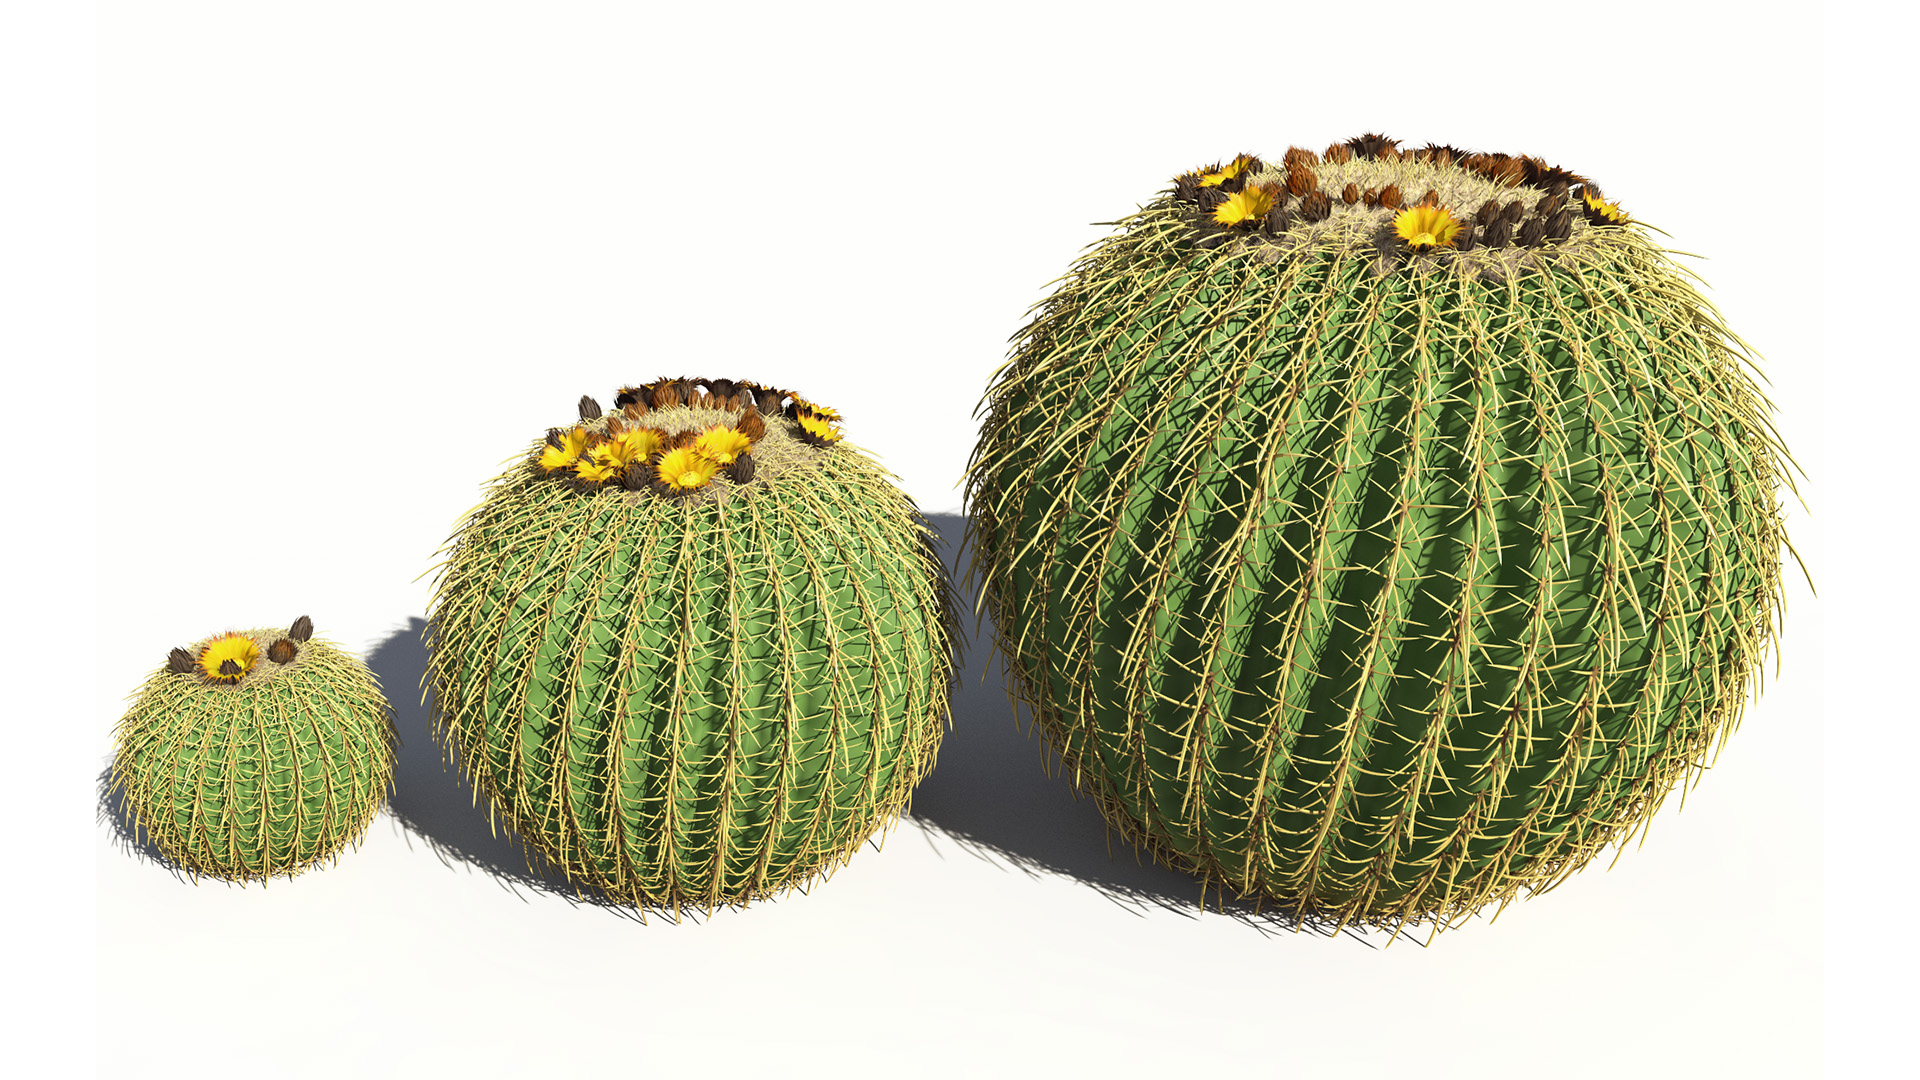 3D model of the Golden barrel cactus Echinocactus grusonii maturity variations